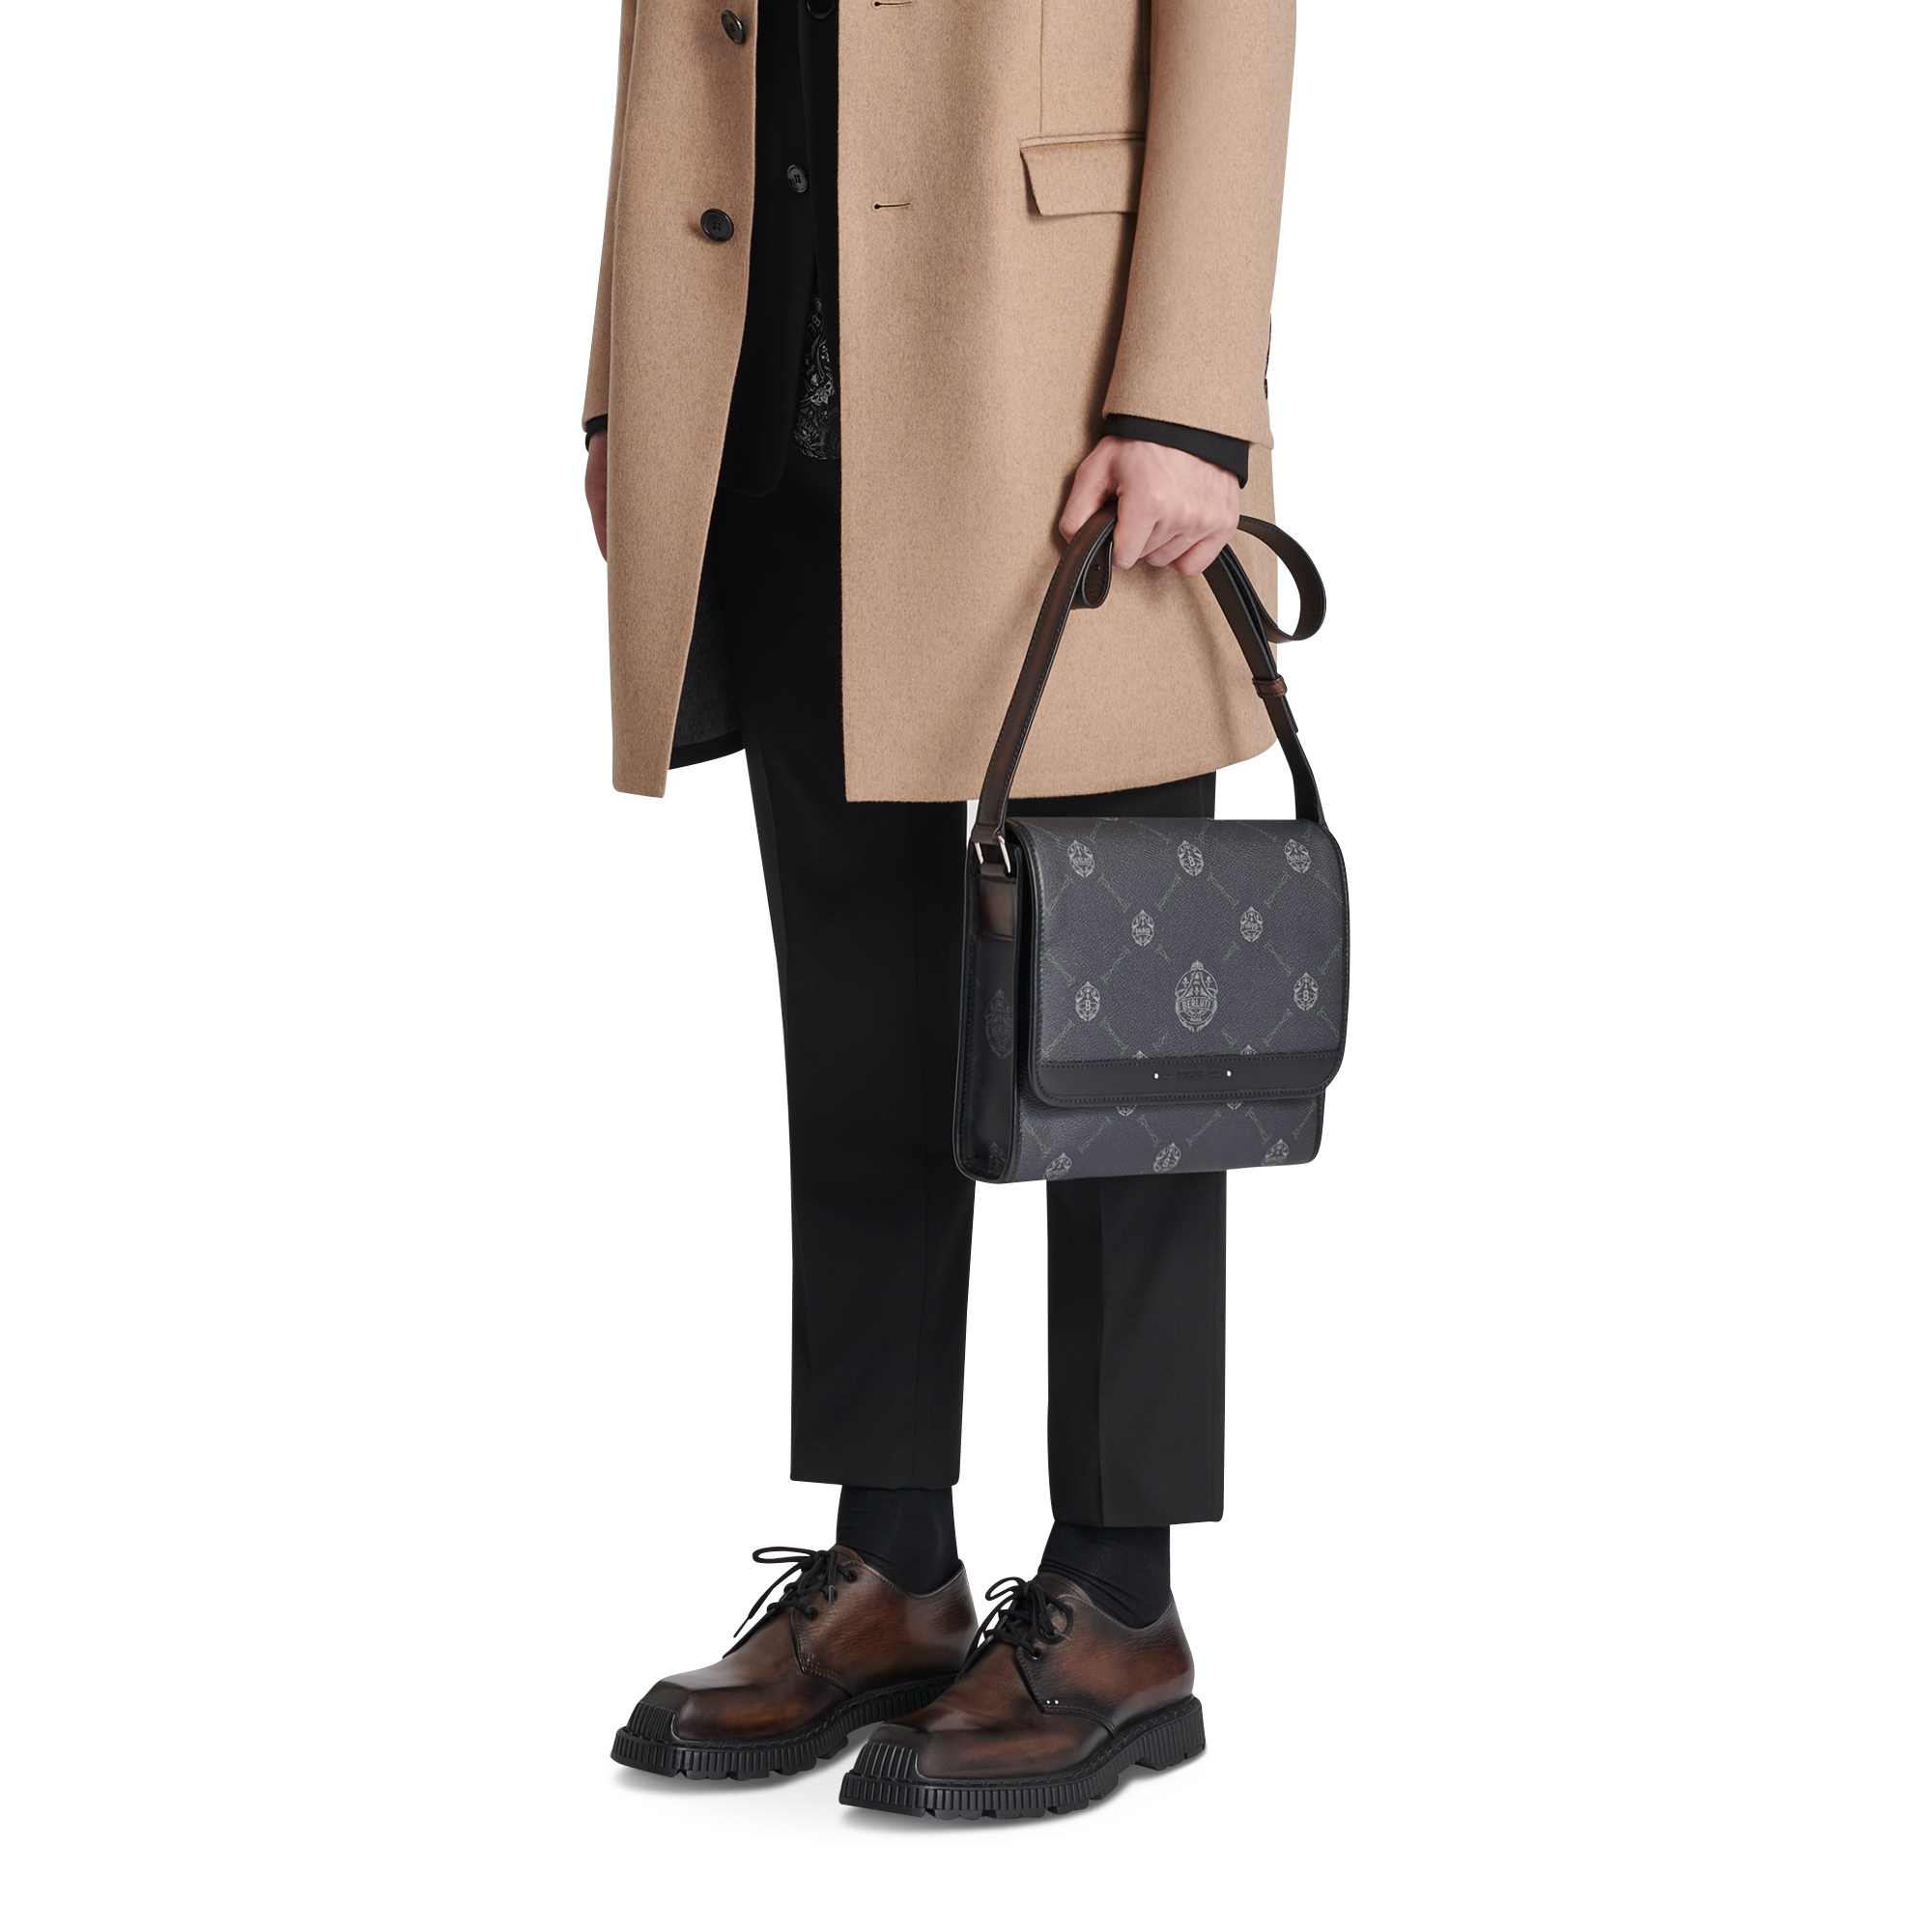 Berluti signature collection bag